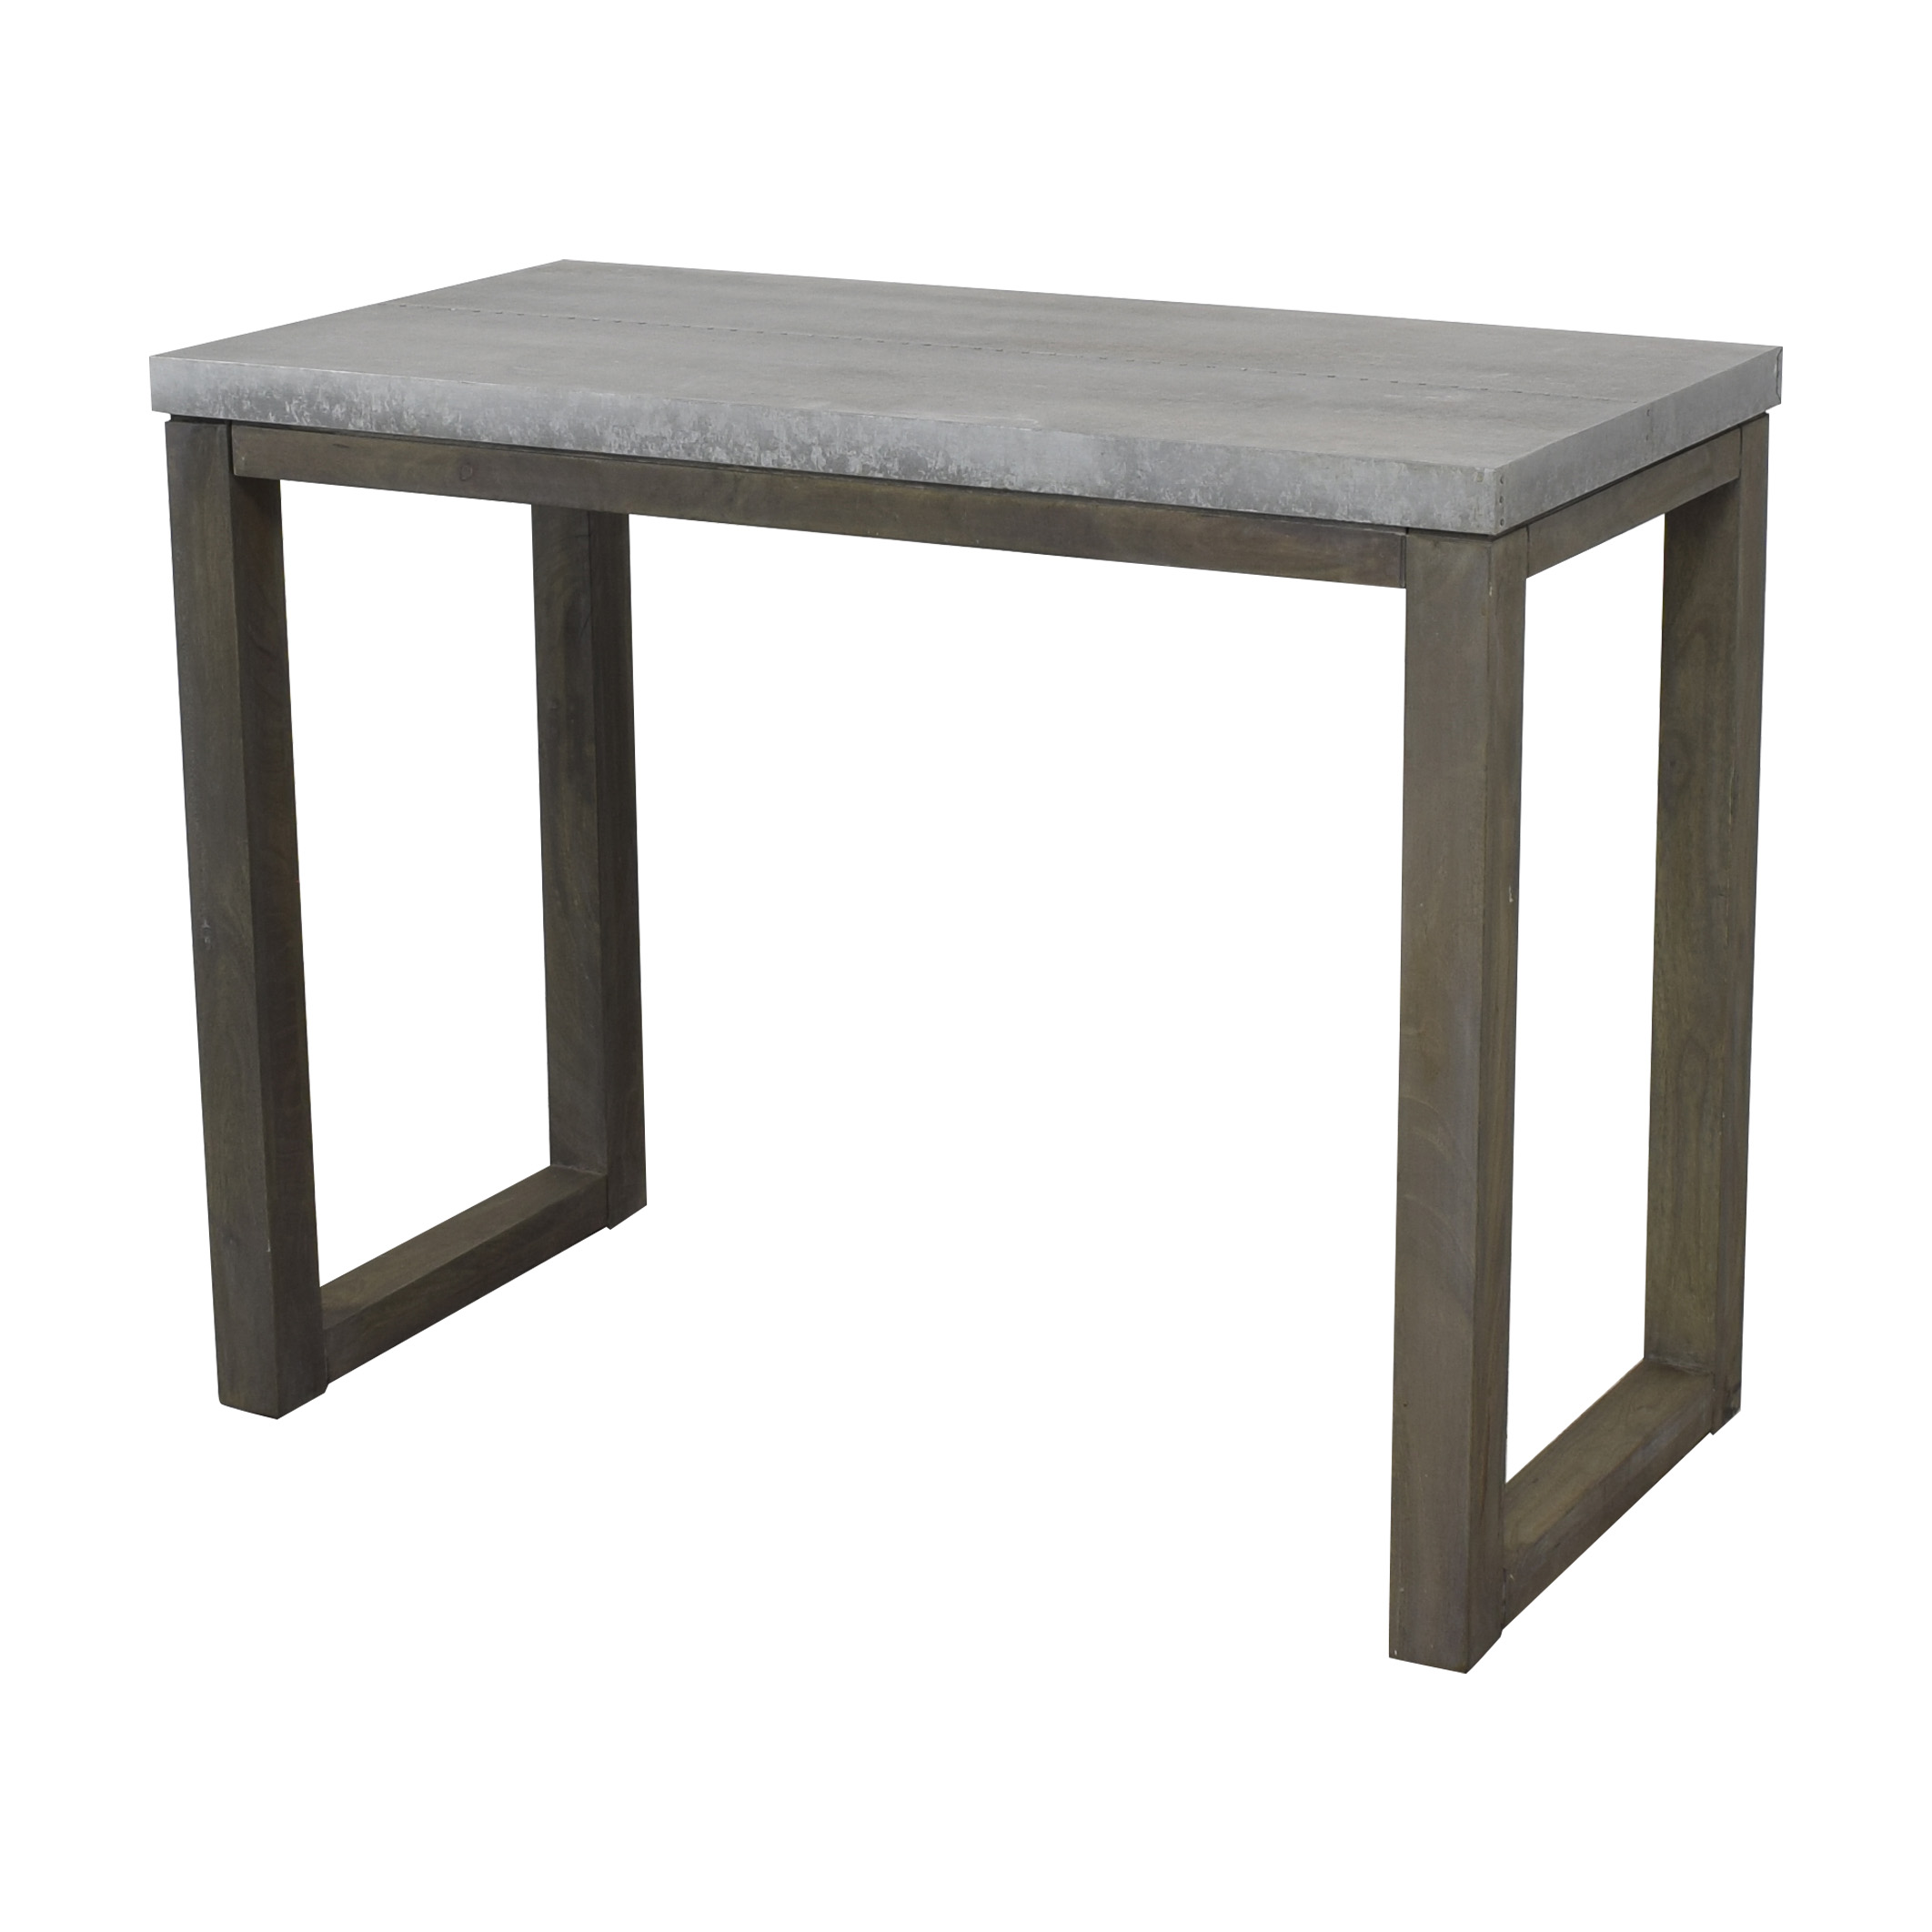 CB2 CB2 Stern Counter Table Dinner Tables